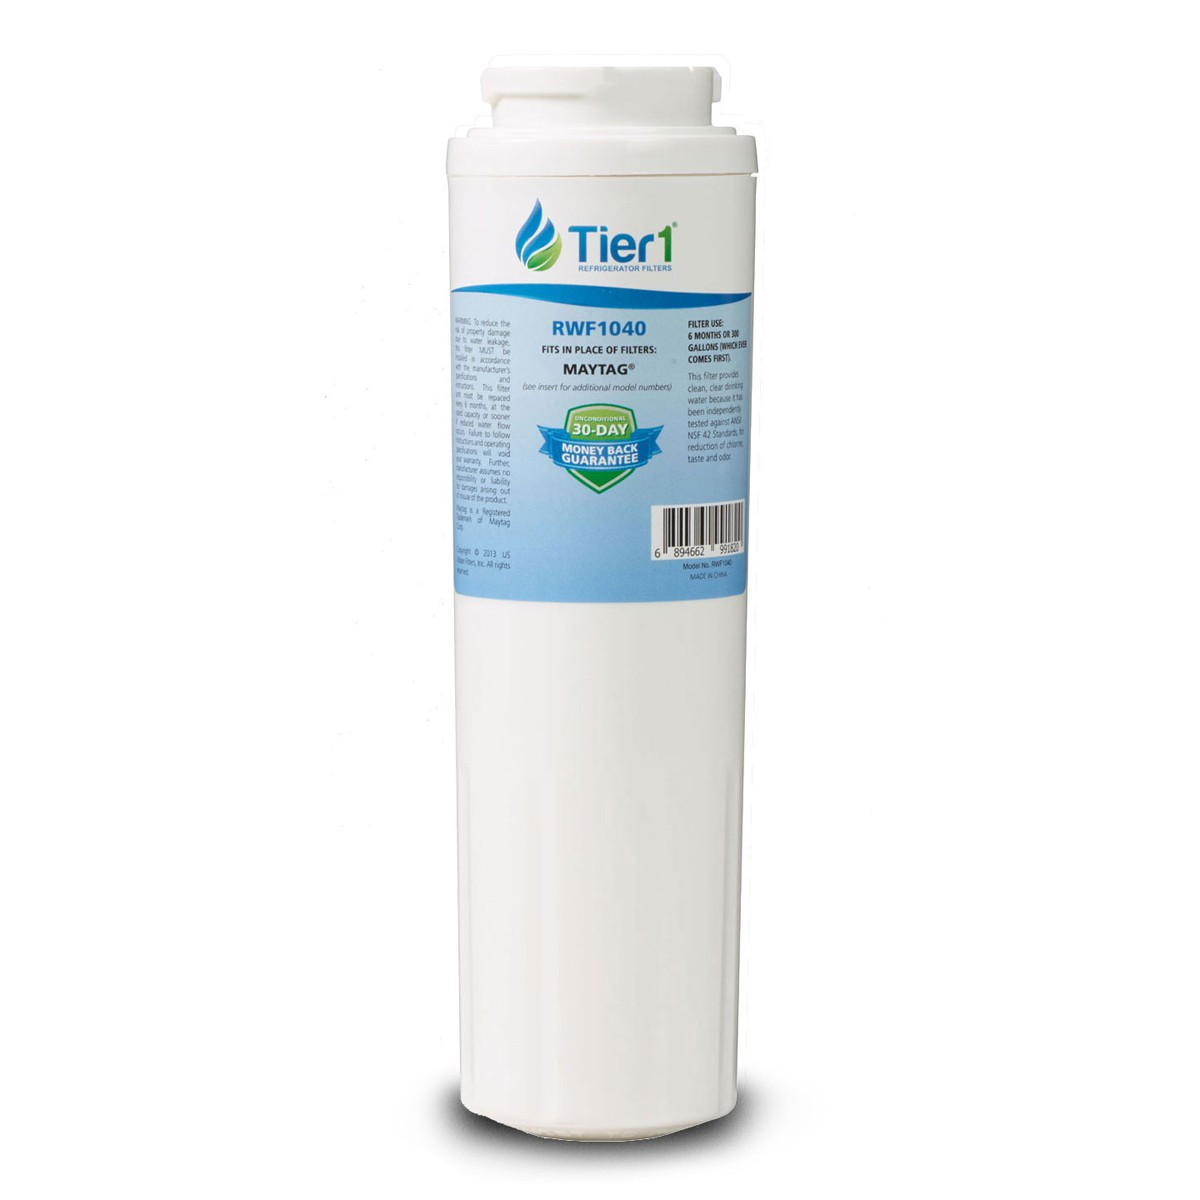 Ukf8001 Maytag Comparable Refrigerator Water Filter By Tier1